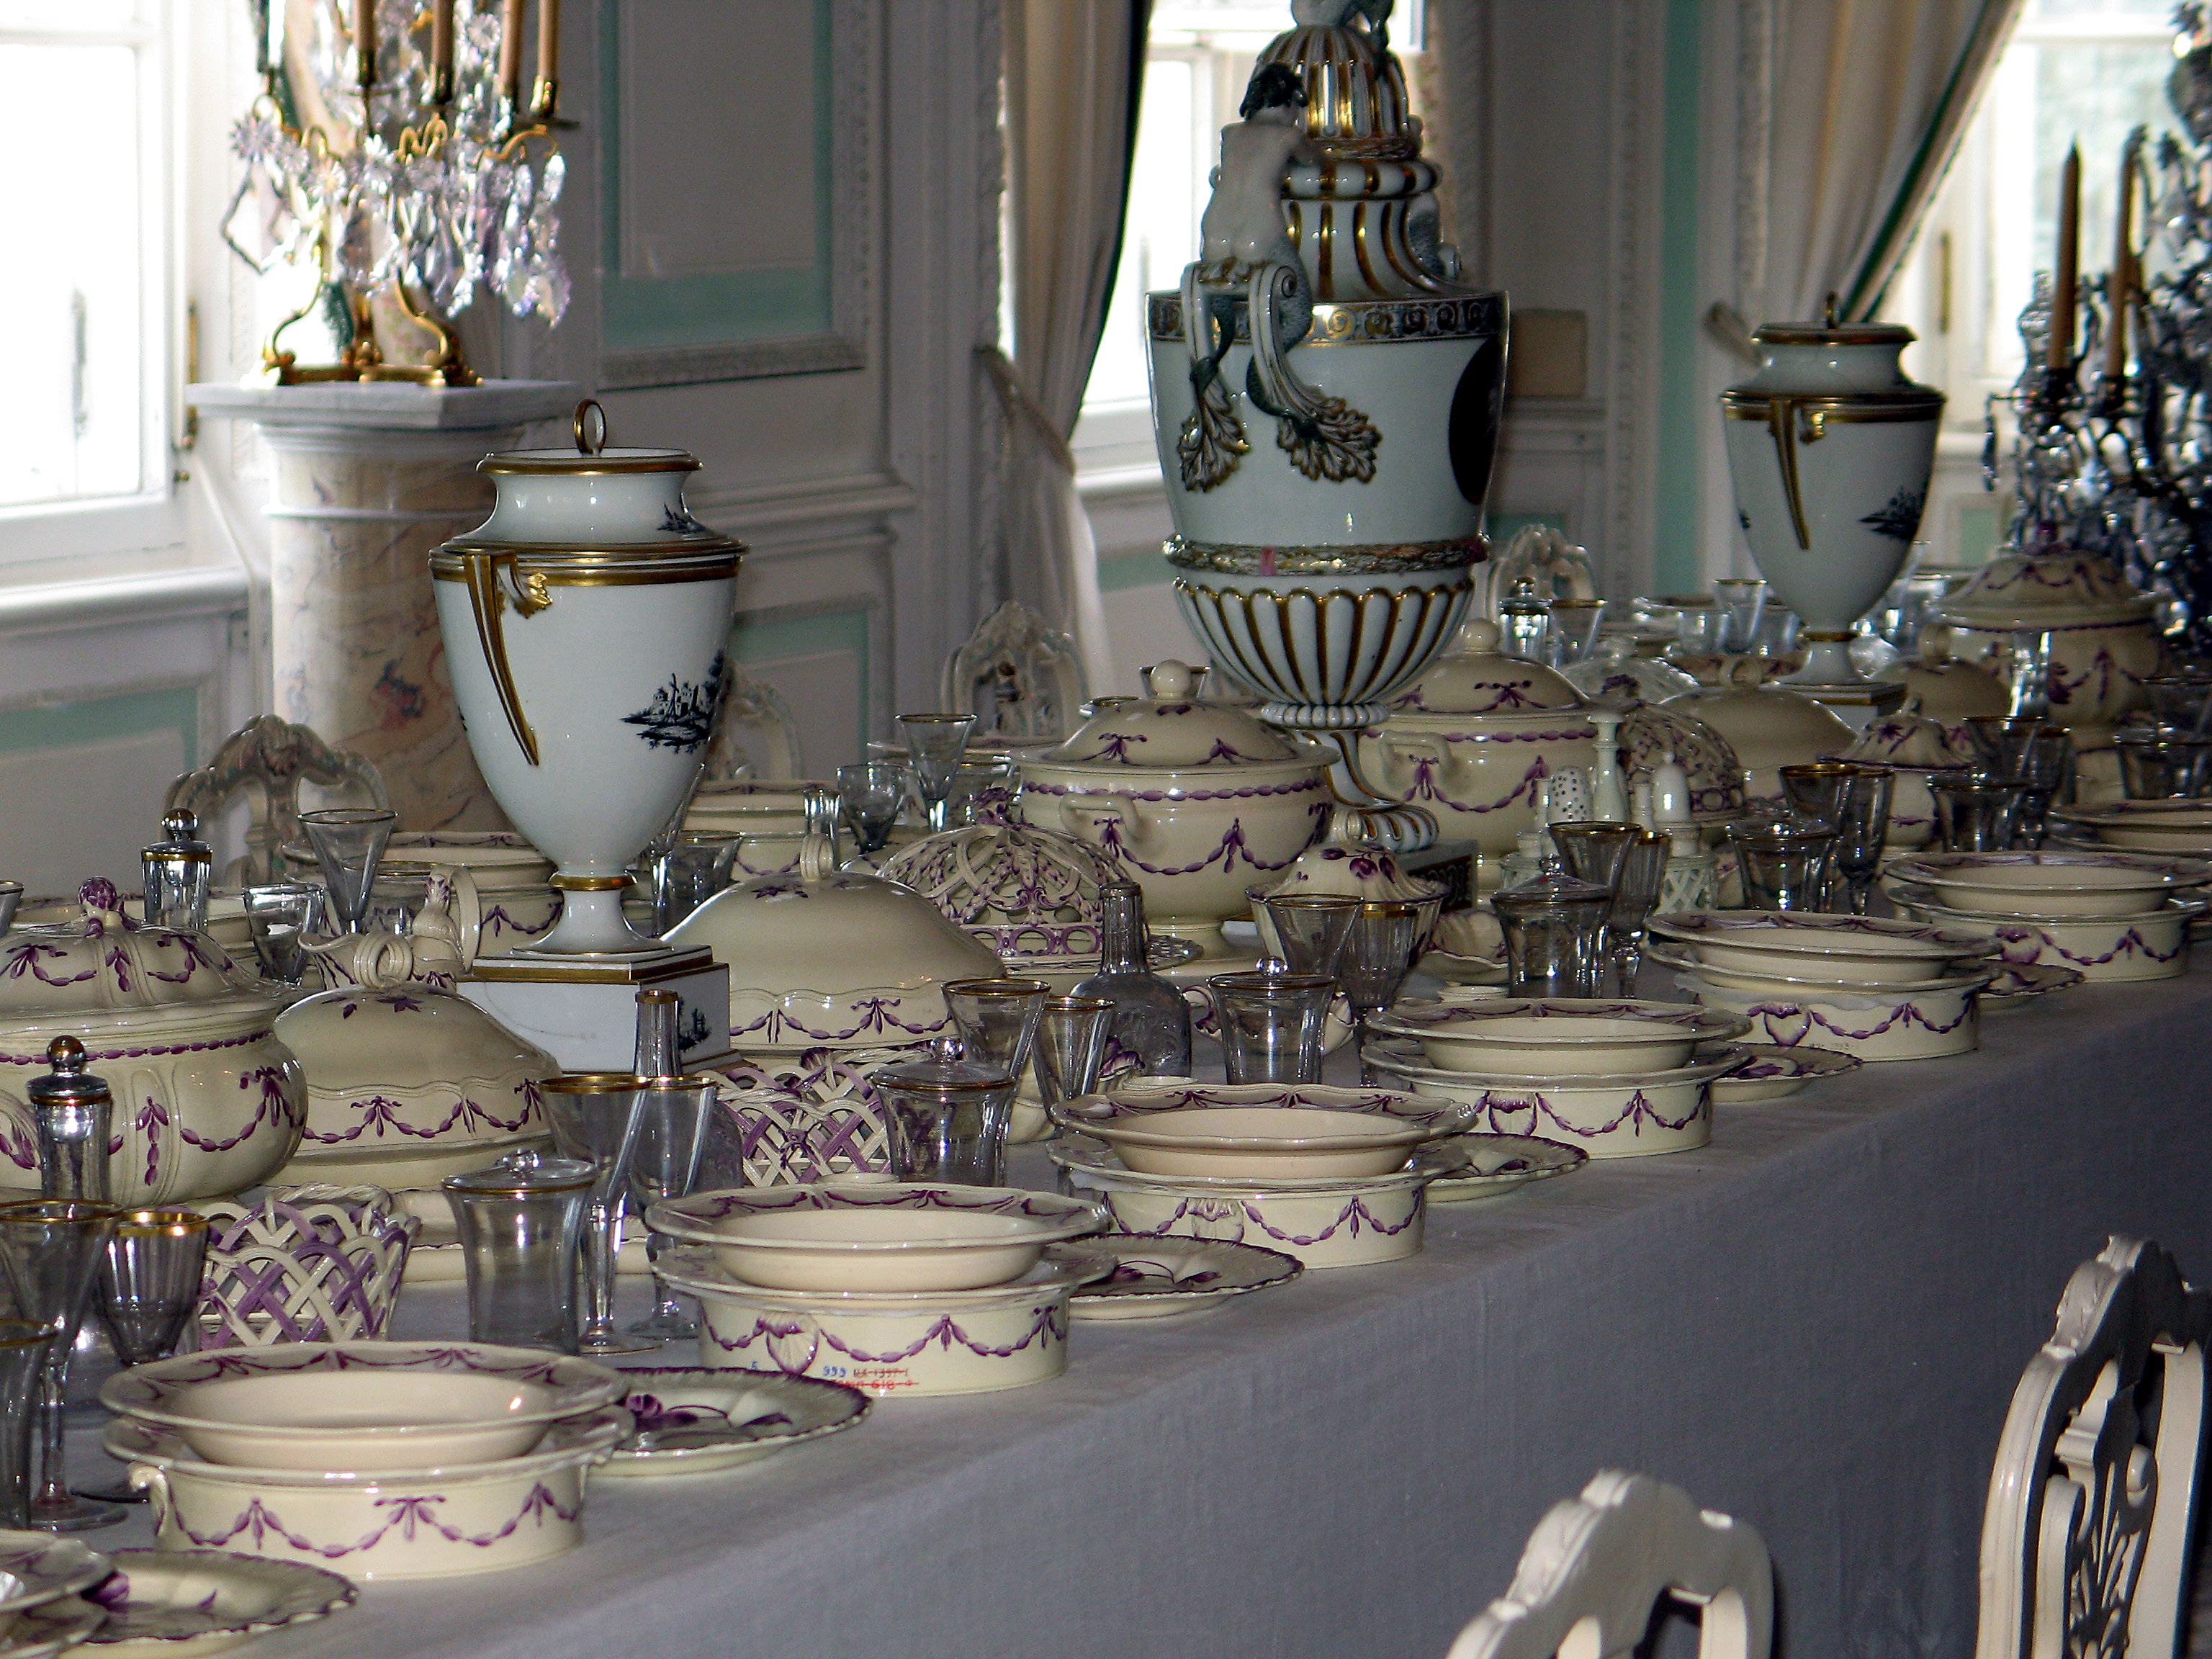 World great peterhof palace purple china in white dining room